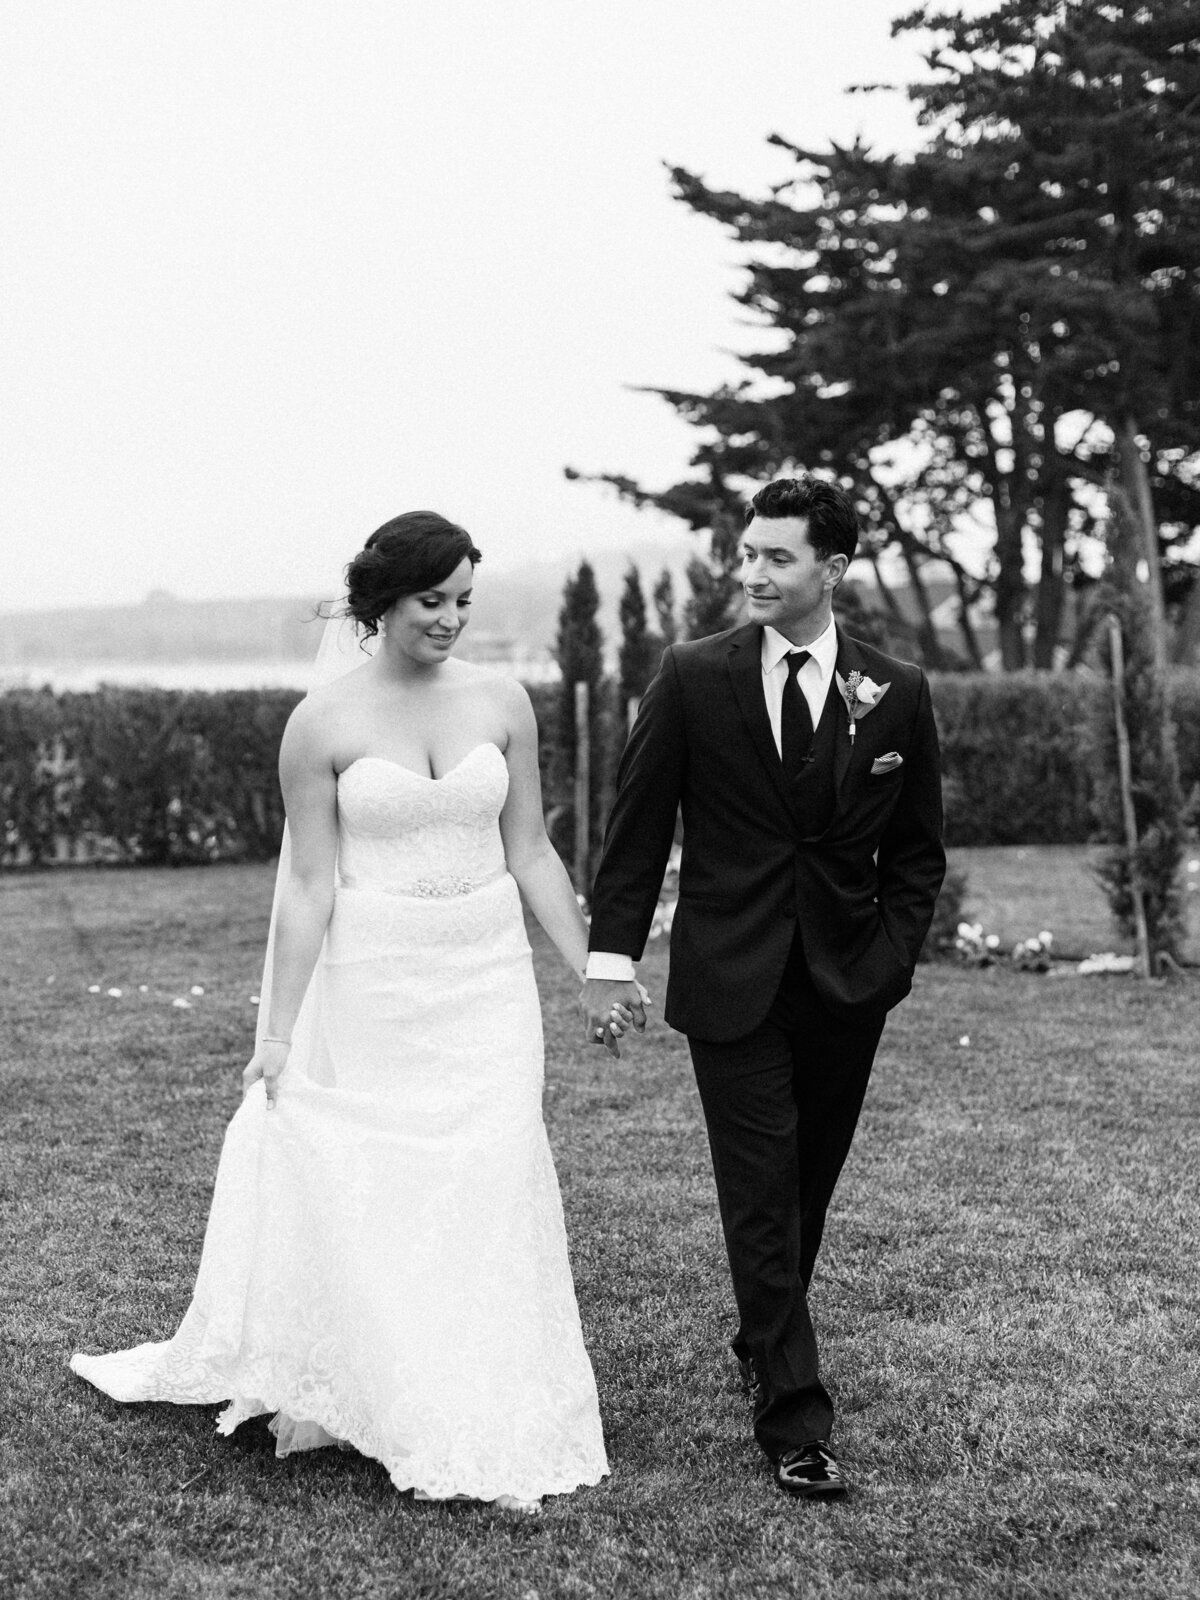 del-sarto-wedding-california-photographer205